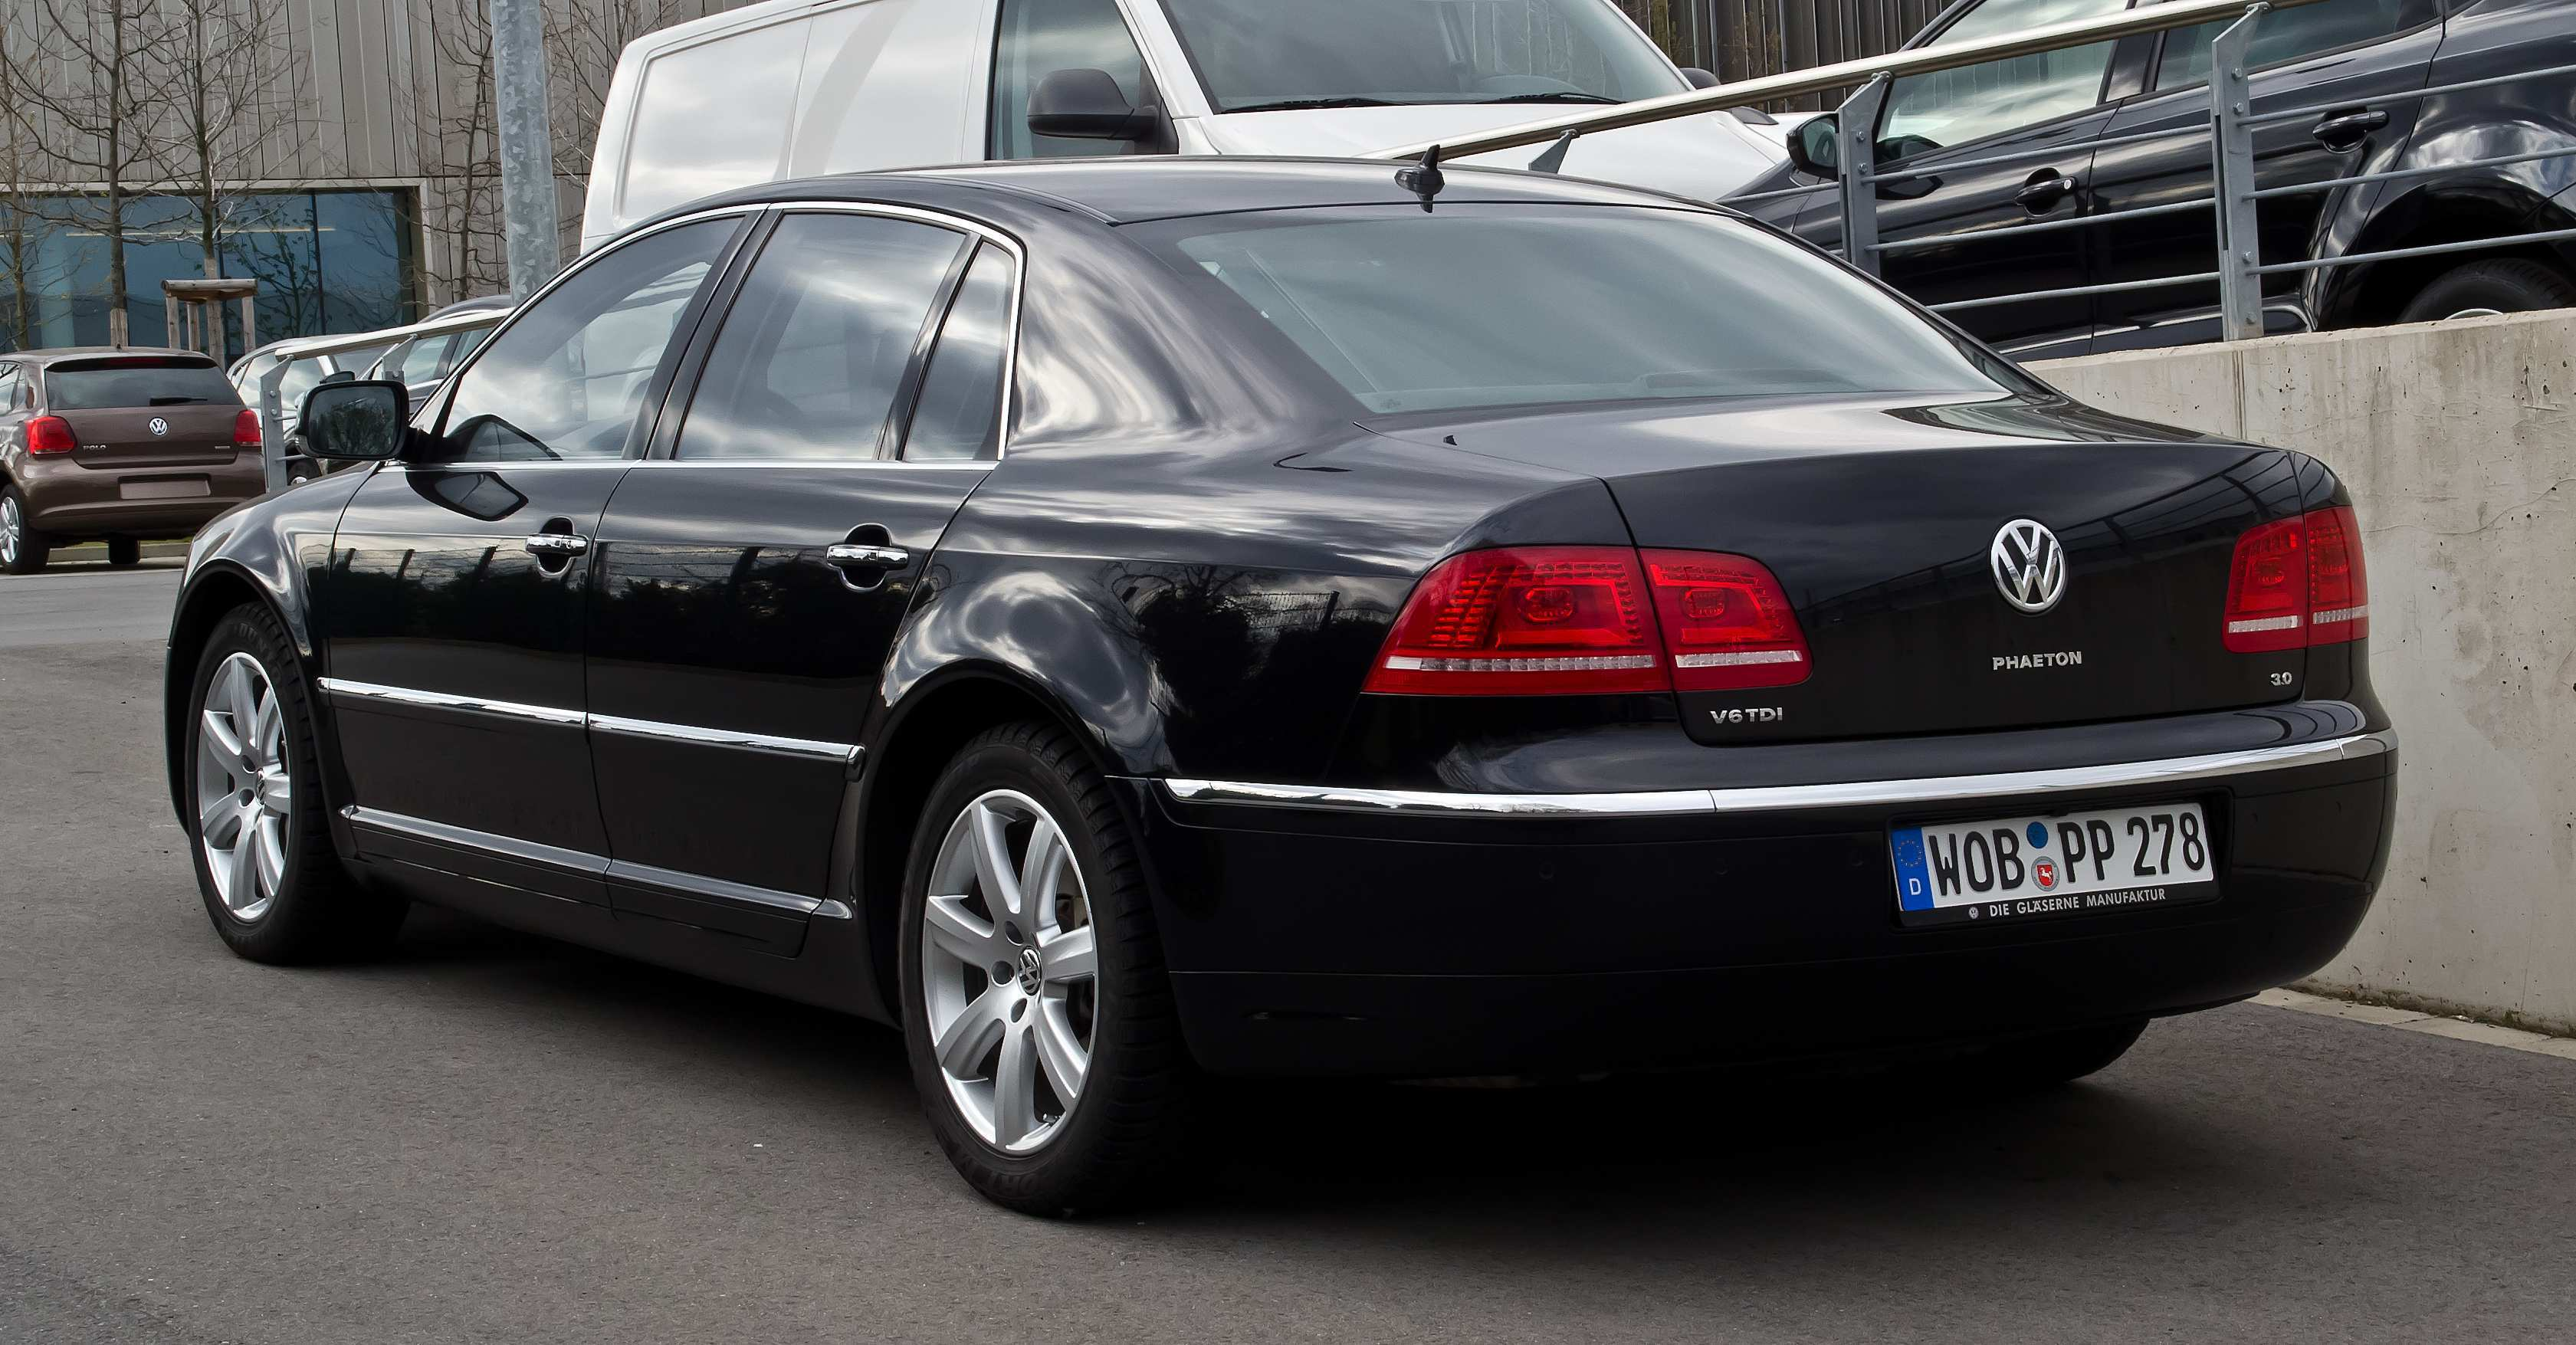 99 The 2019 VW Phaeton Price And Review